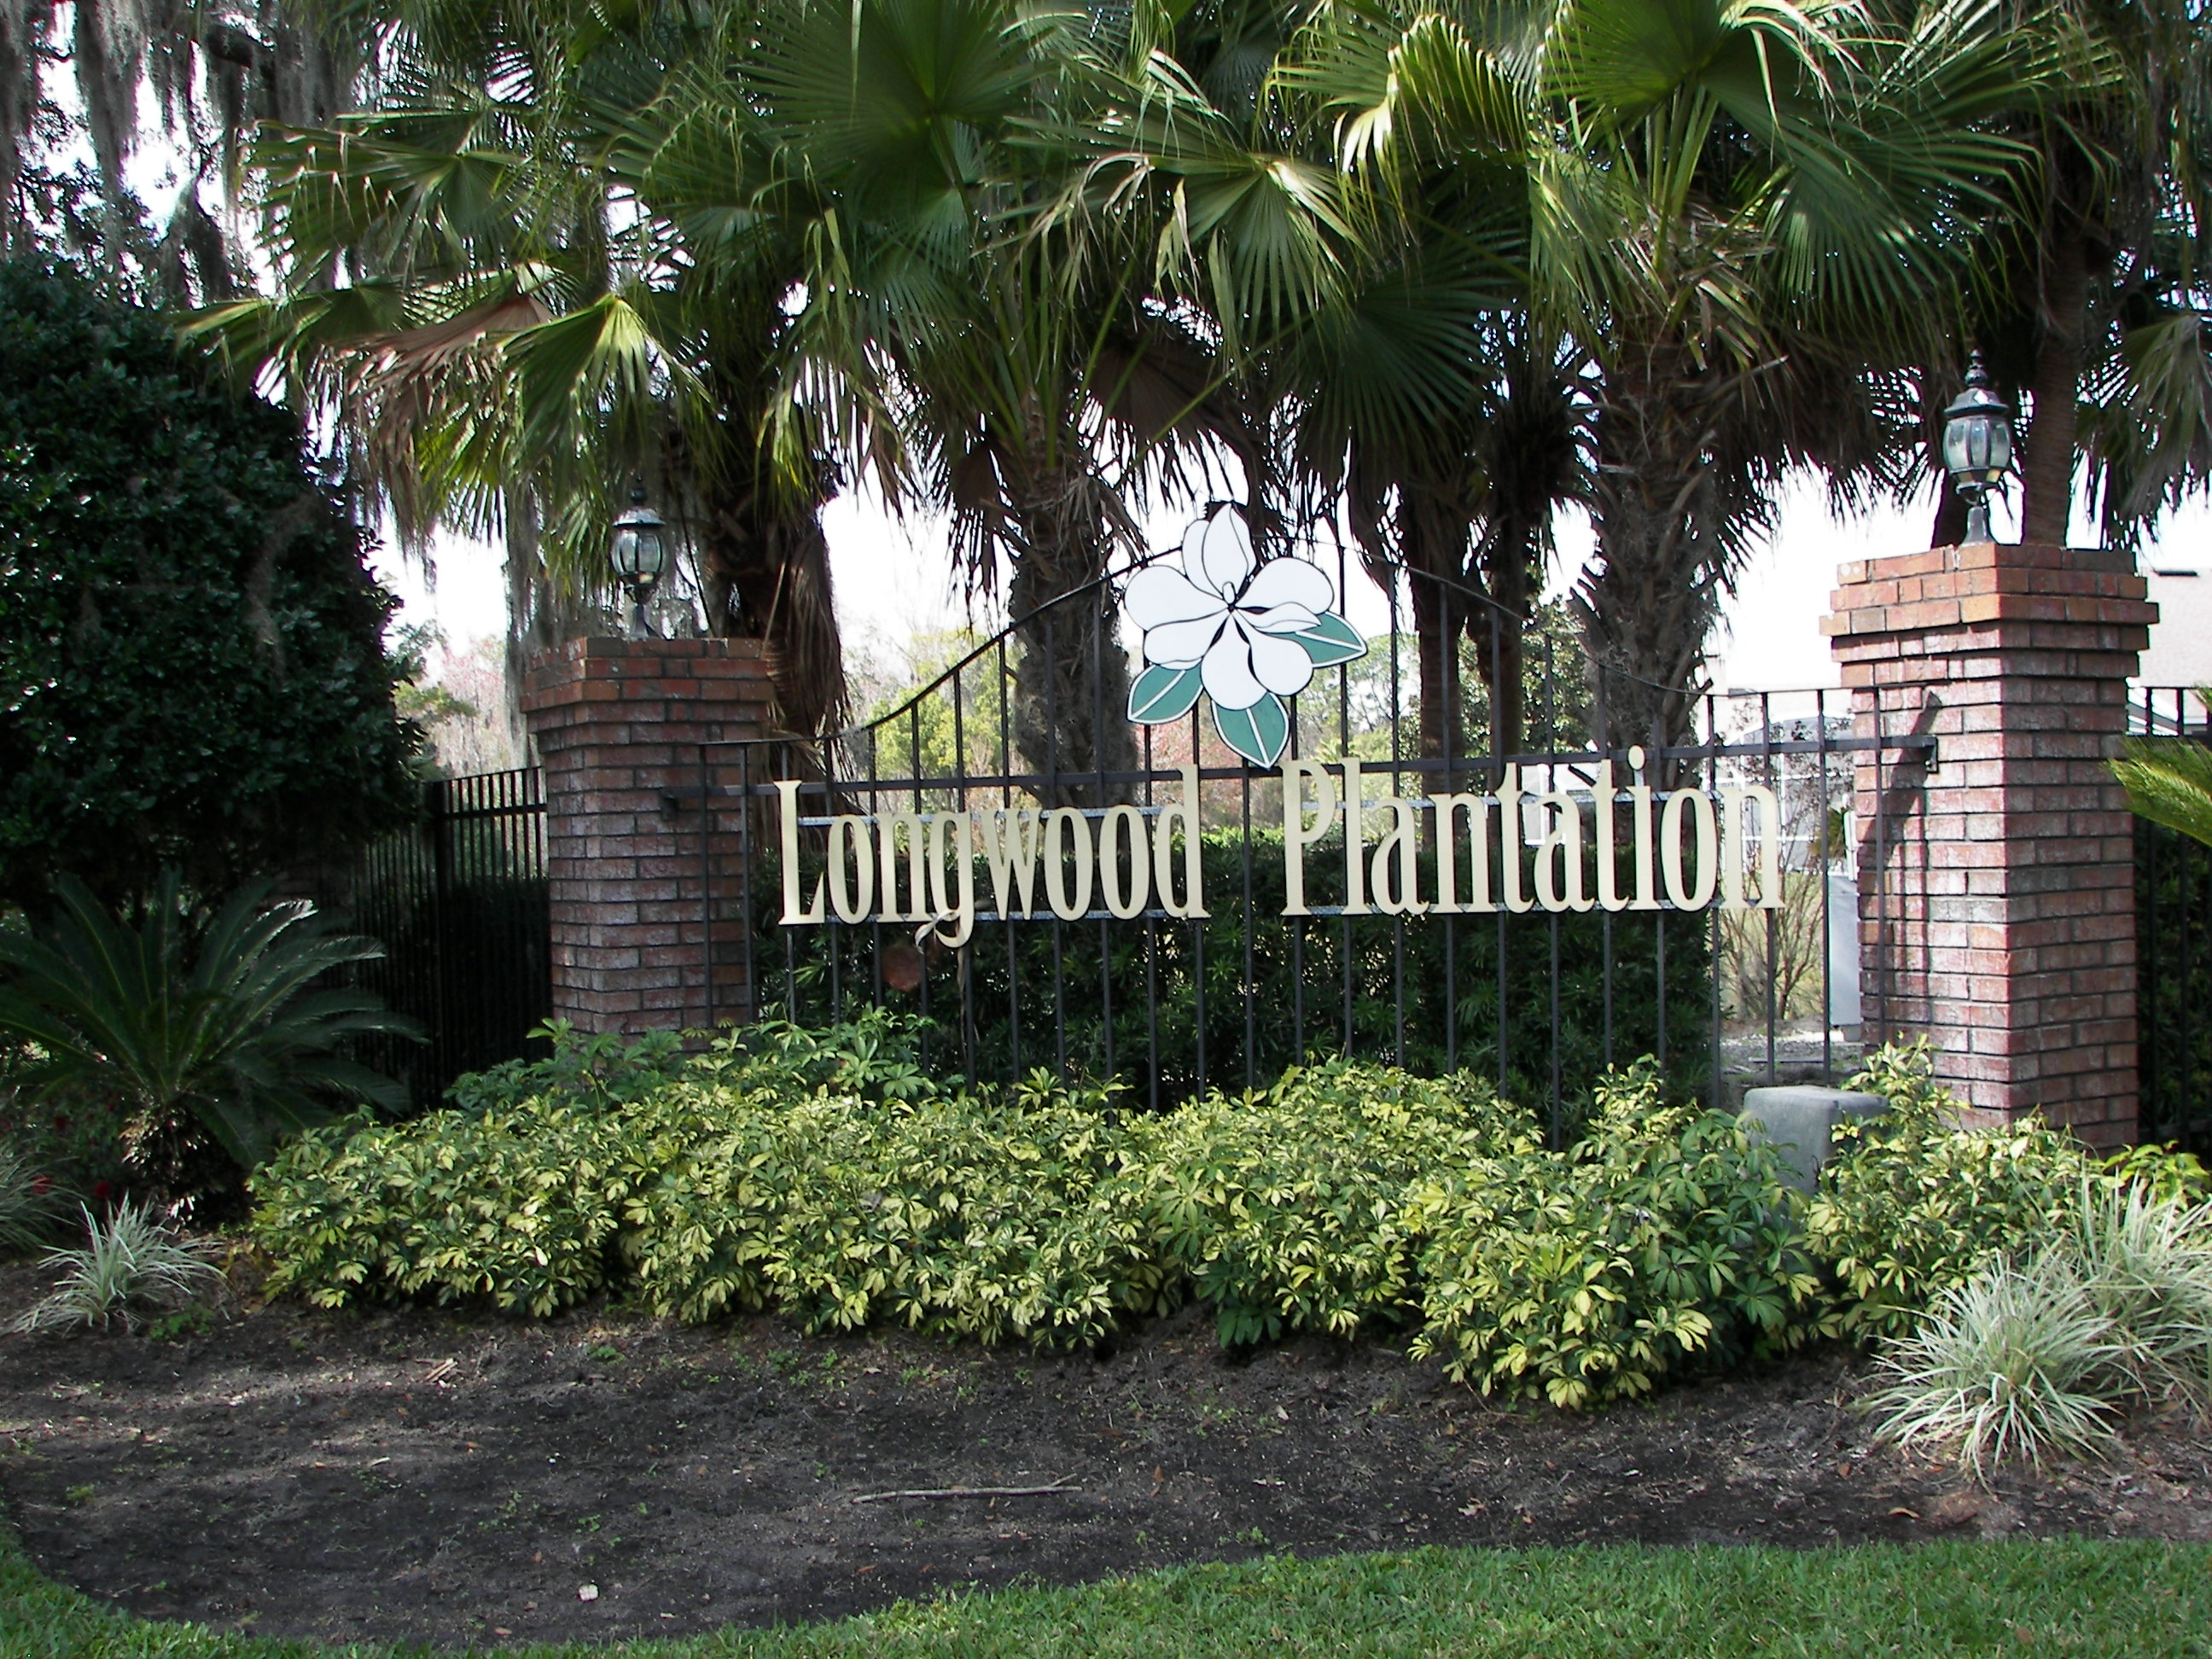 Longwood Plantation, FL